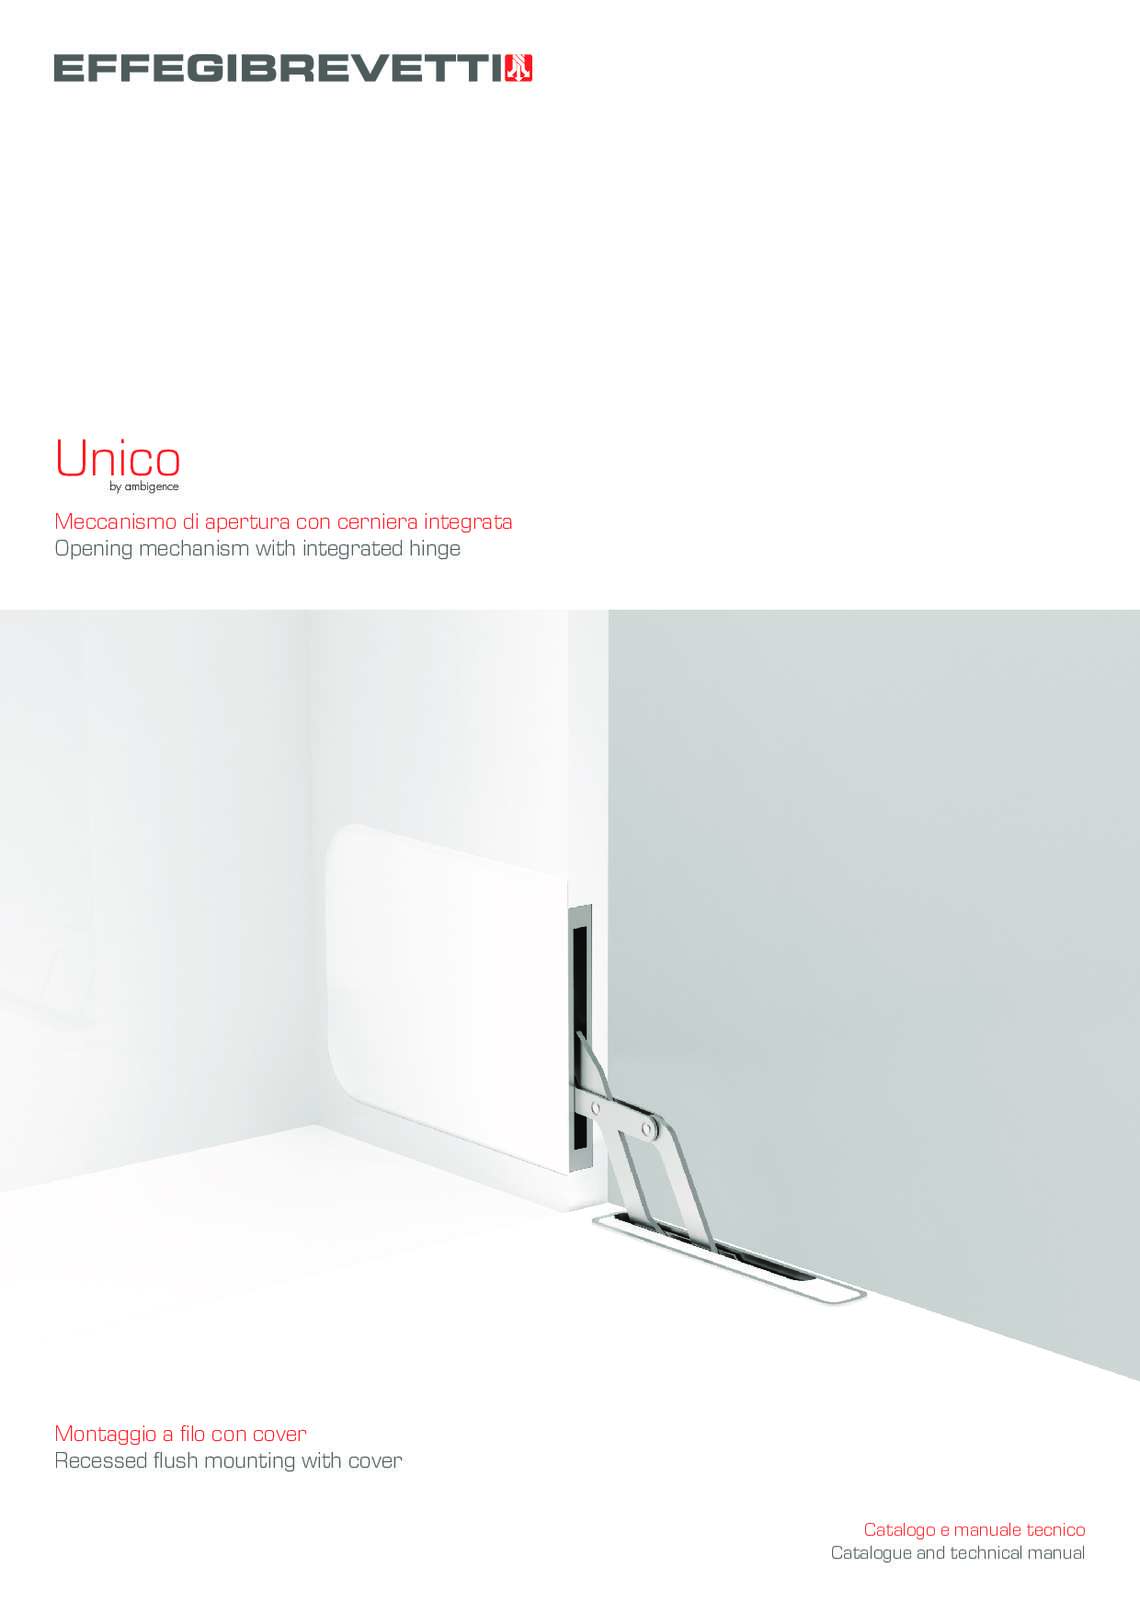 Unico - Opening mechanism with integrated hinge and recessed flush mounting